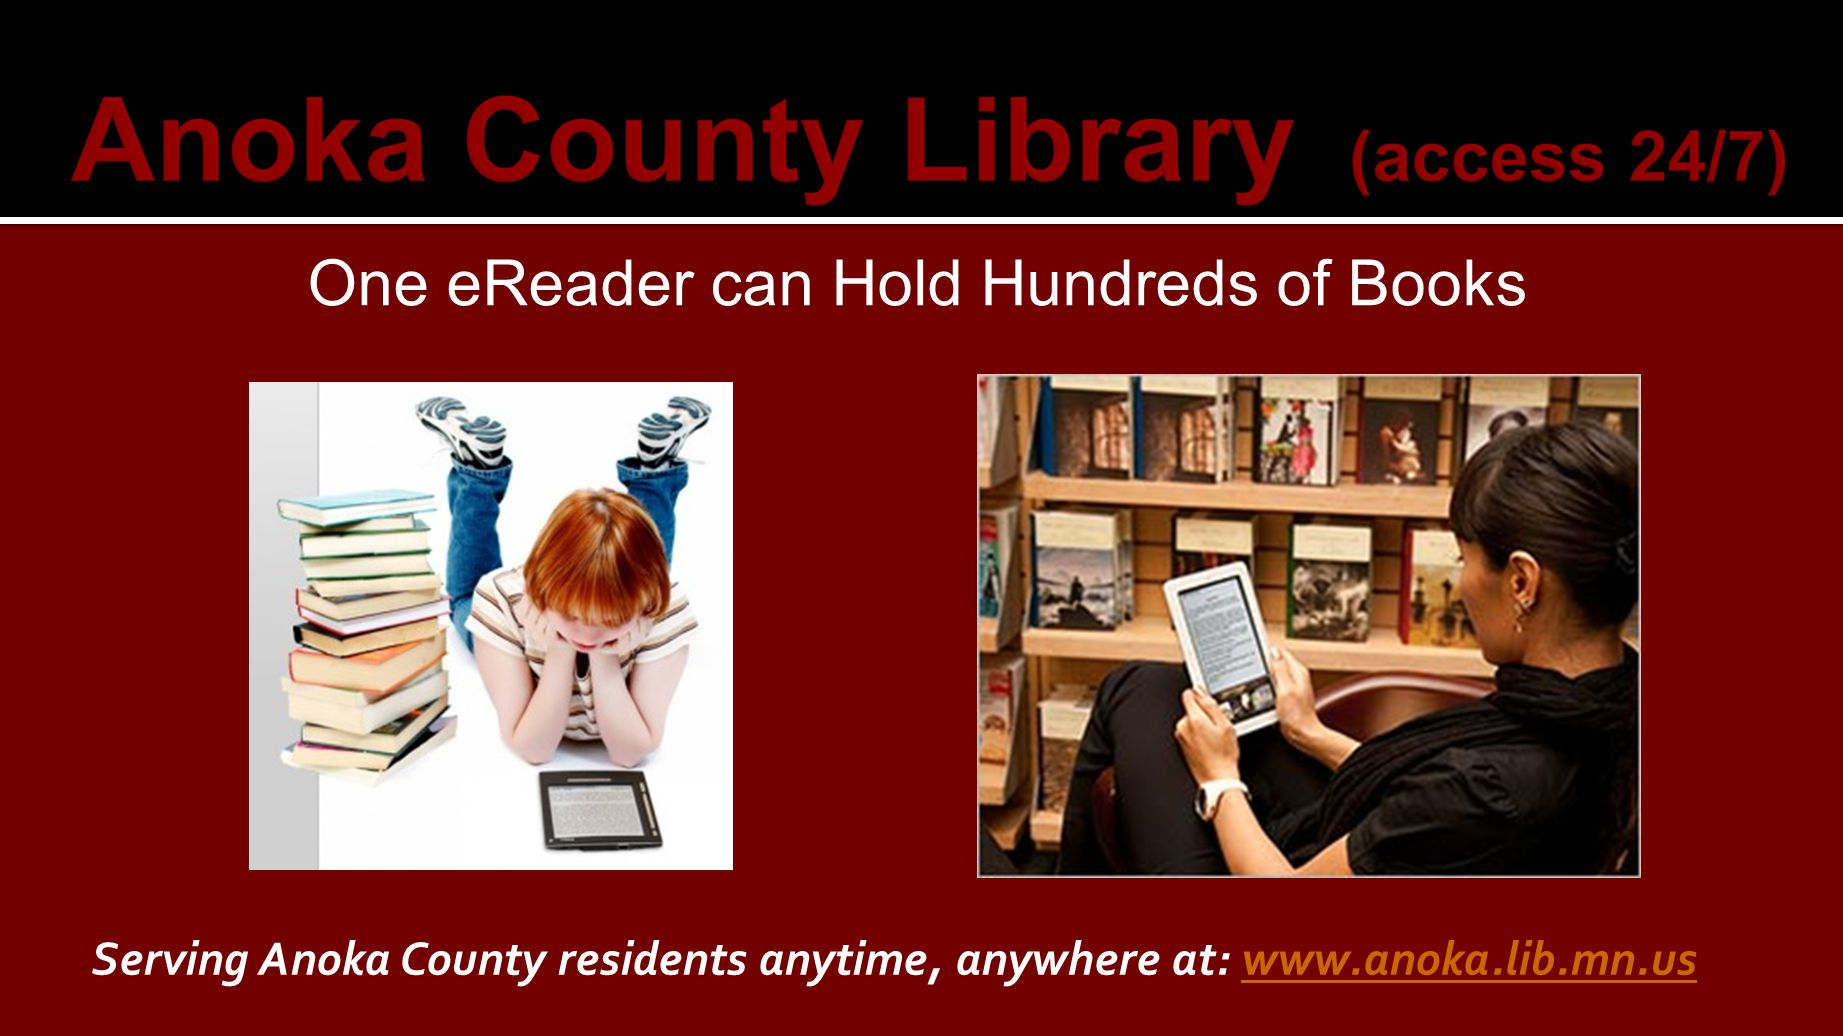 One eReader can Hold Hundreds of Books Serving Anoka County residents anytime, anywhere at: www.anoka.lib.mn.uswww.anoka.lib.mn.us